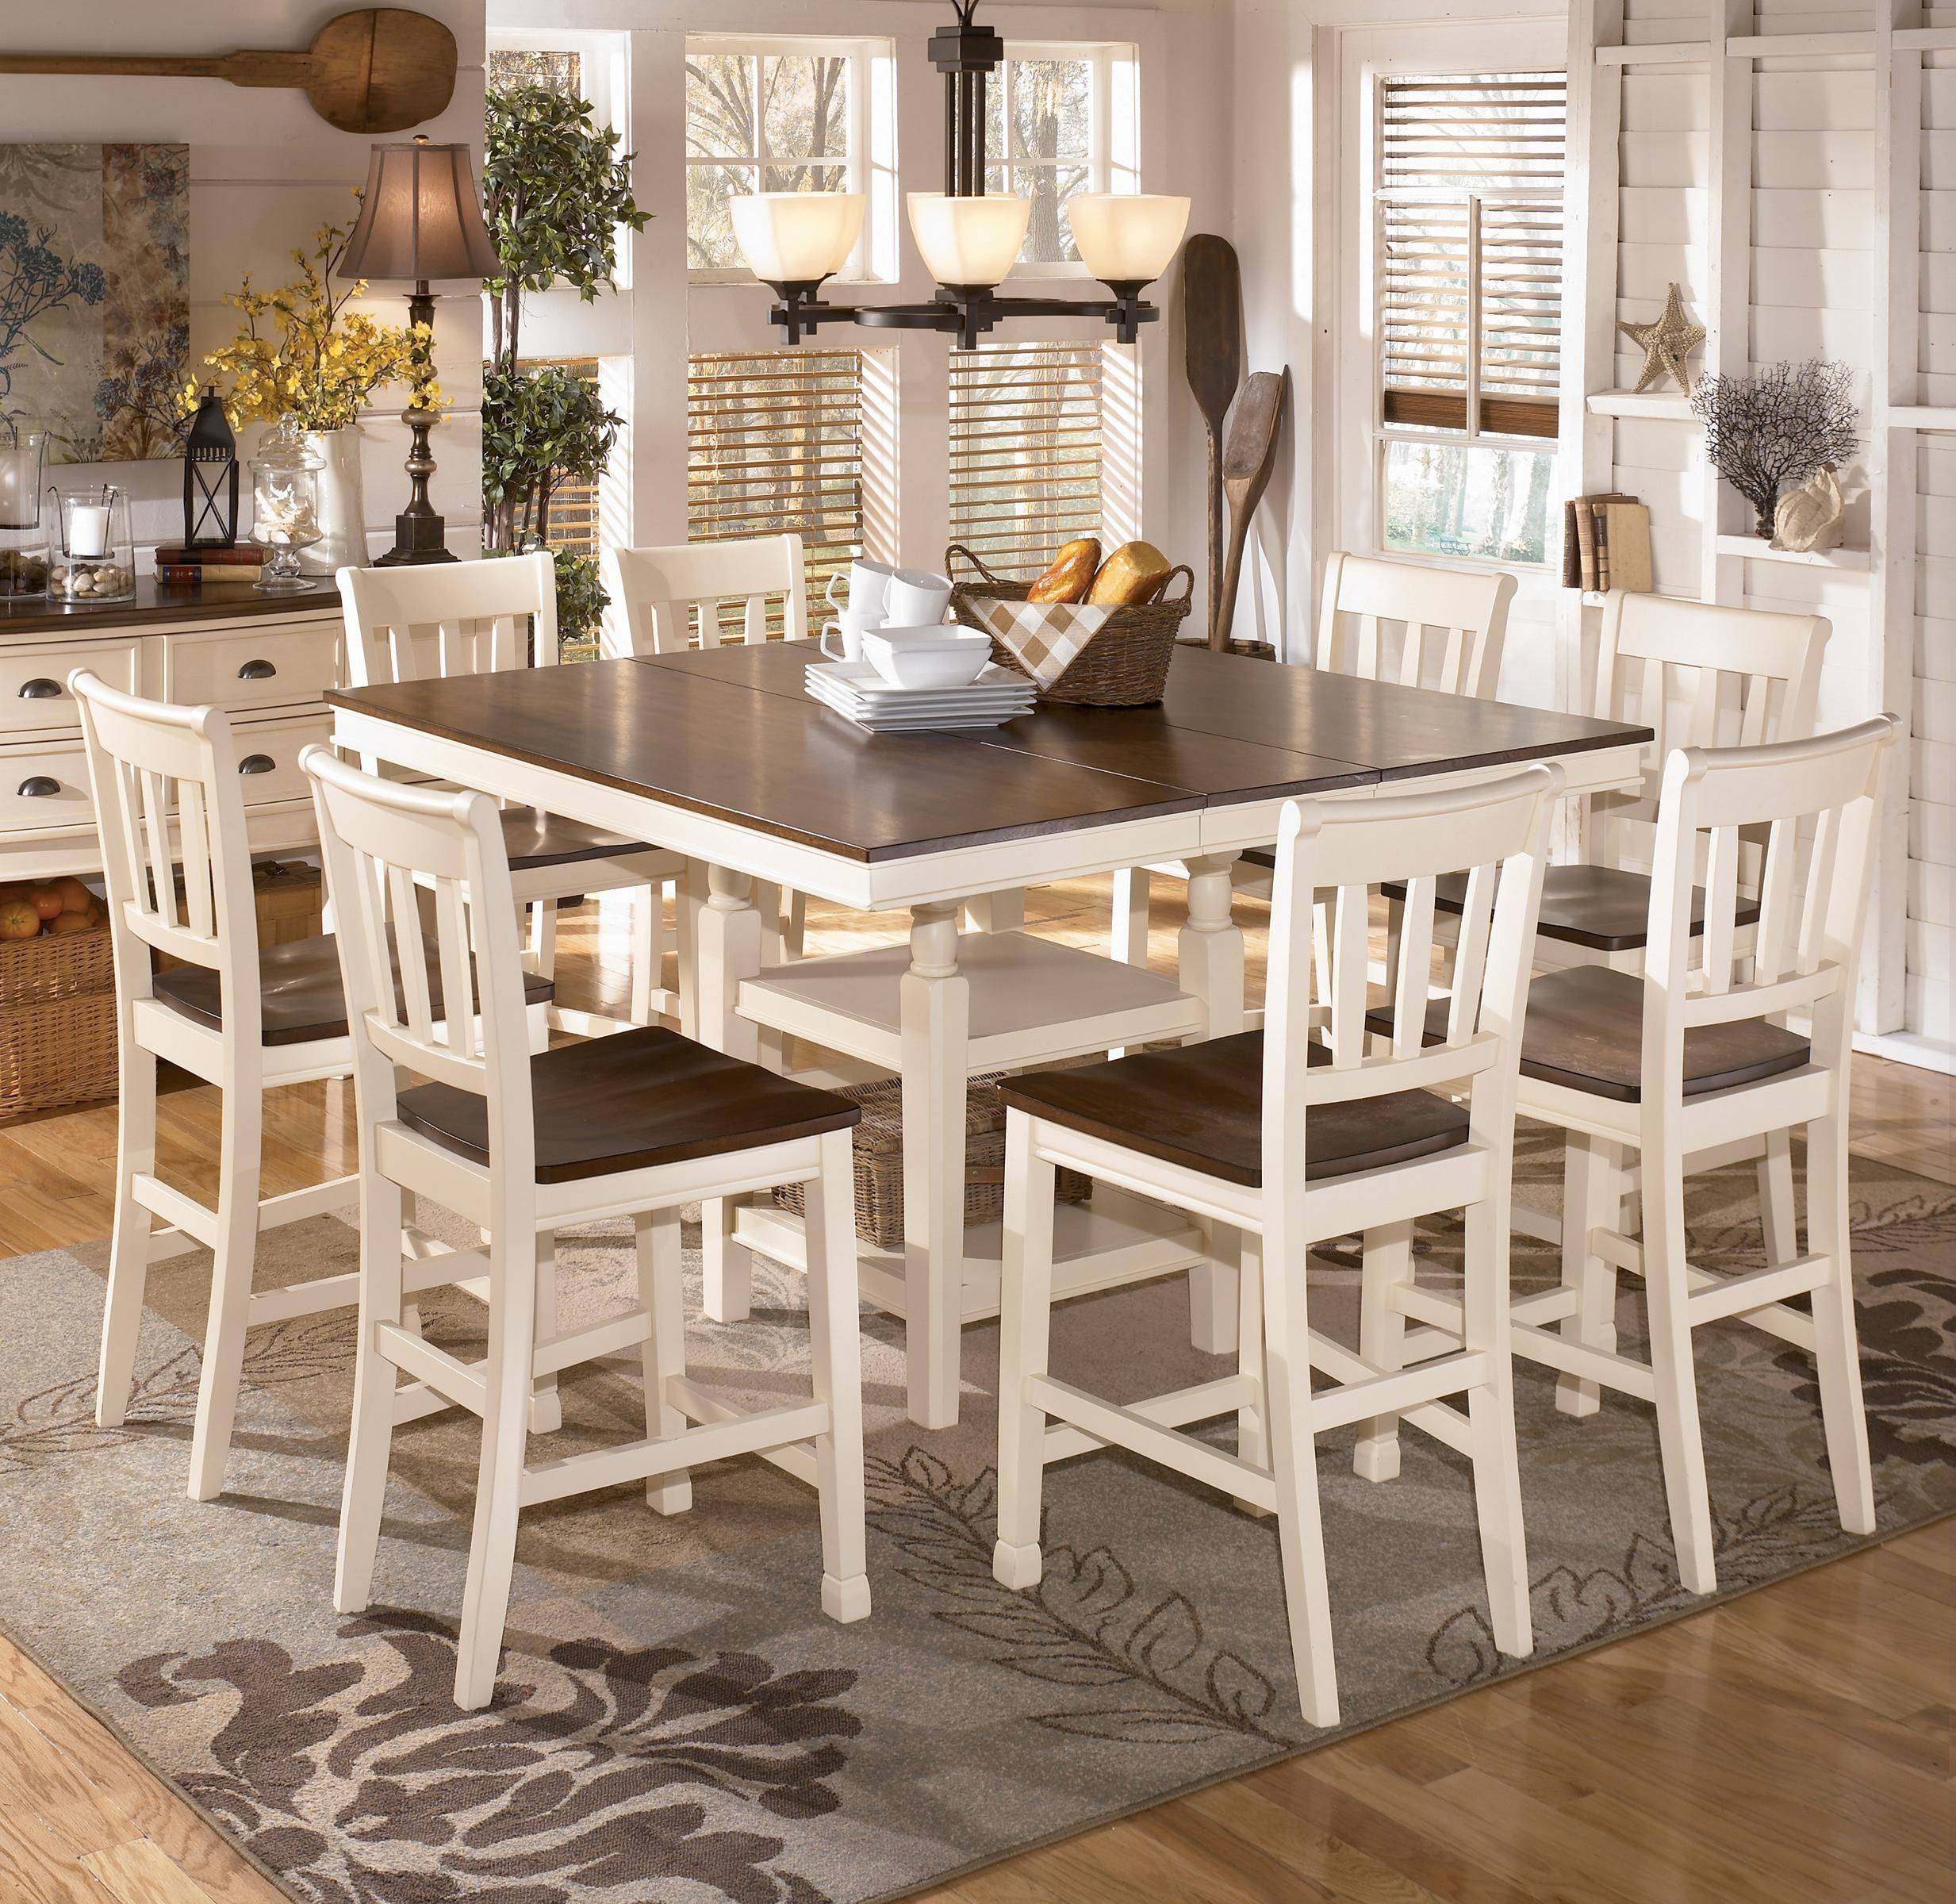 Whitesburg 9Piece Square Counter Extension Table Setashley Captivating 9 Pcs Dining Room Set Decorating Design